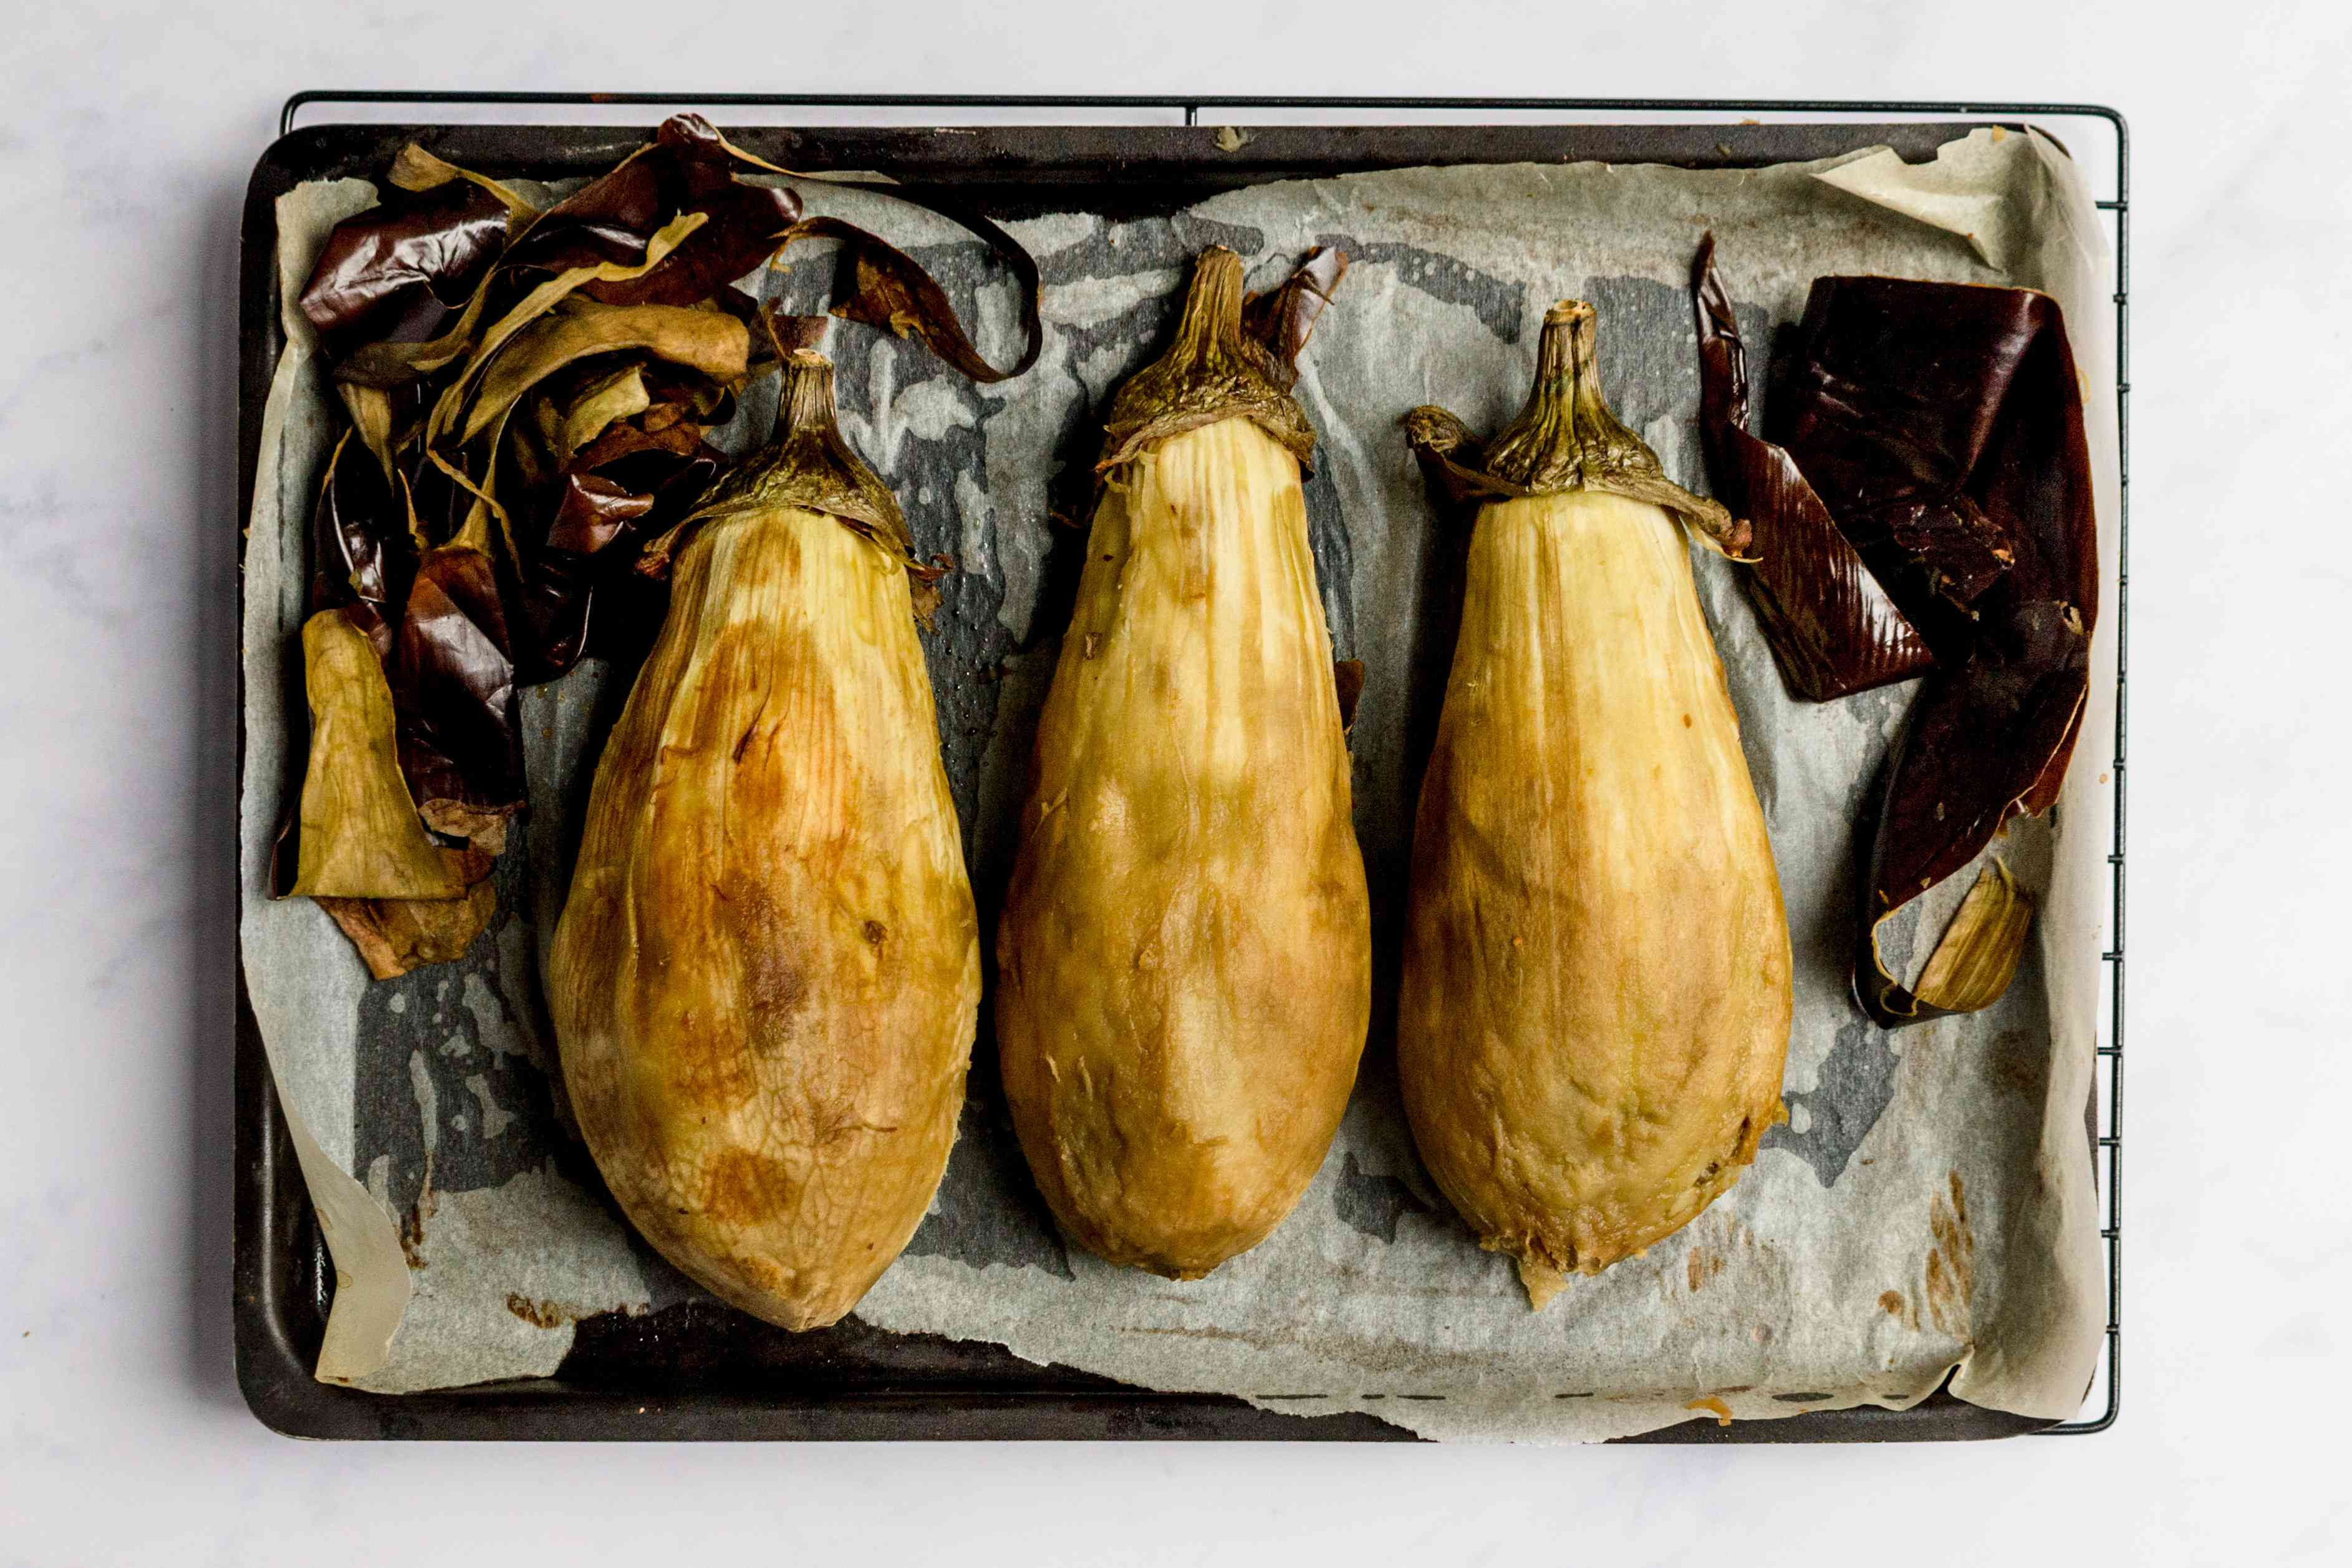 remove the skin from the baked eggplant